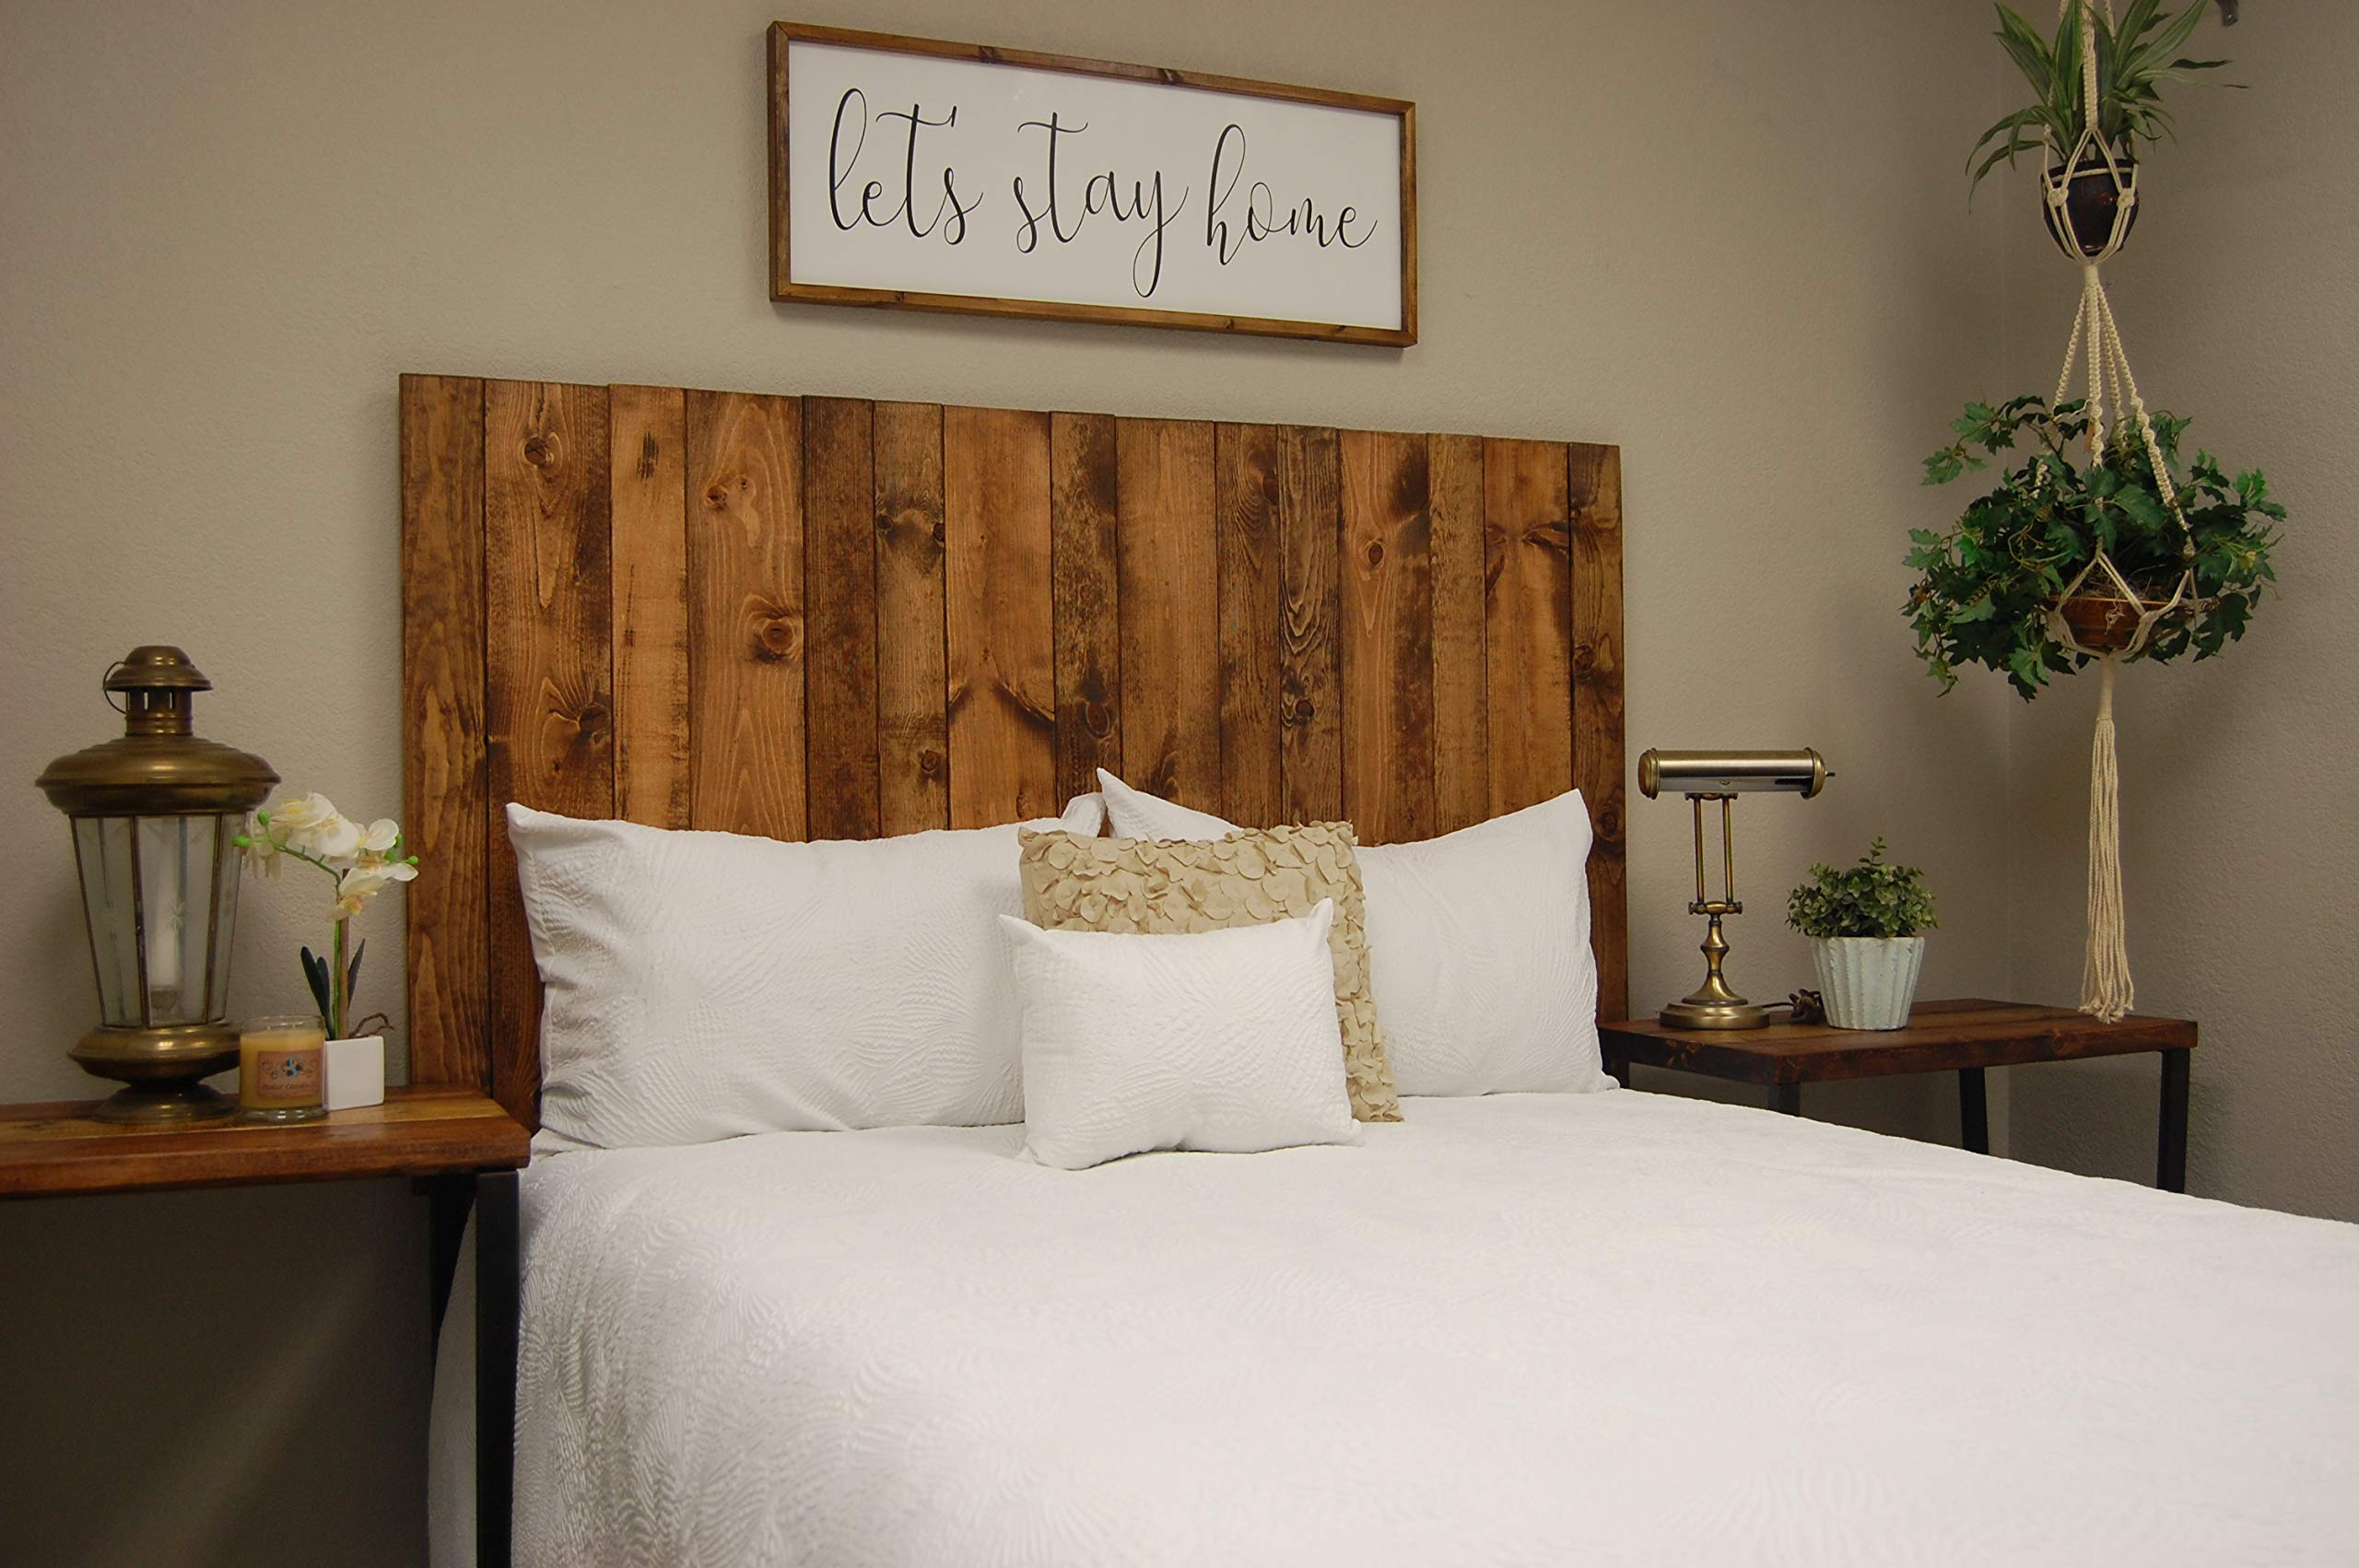 Honey Headboard King Size Stain, Hanger Style, Handcrafted. Mounts on Wall. Easy Installation by Barn Walls